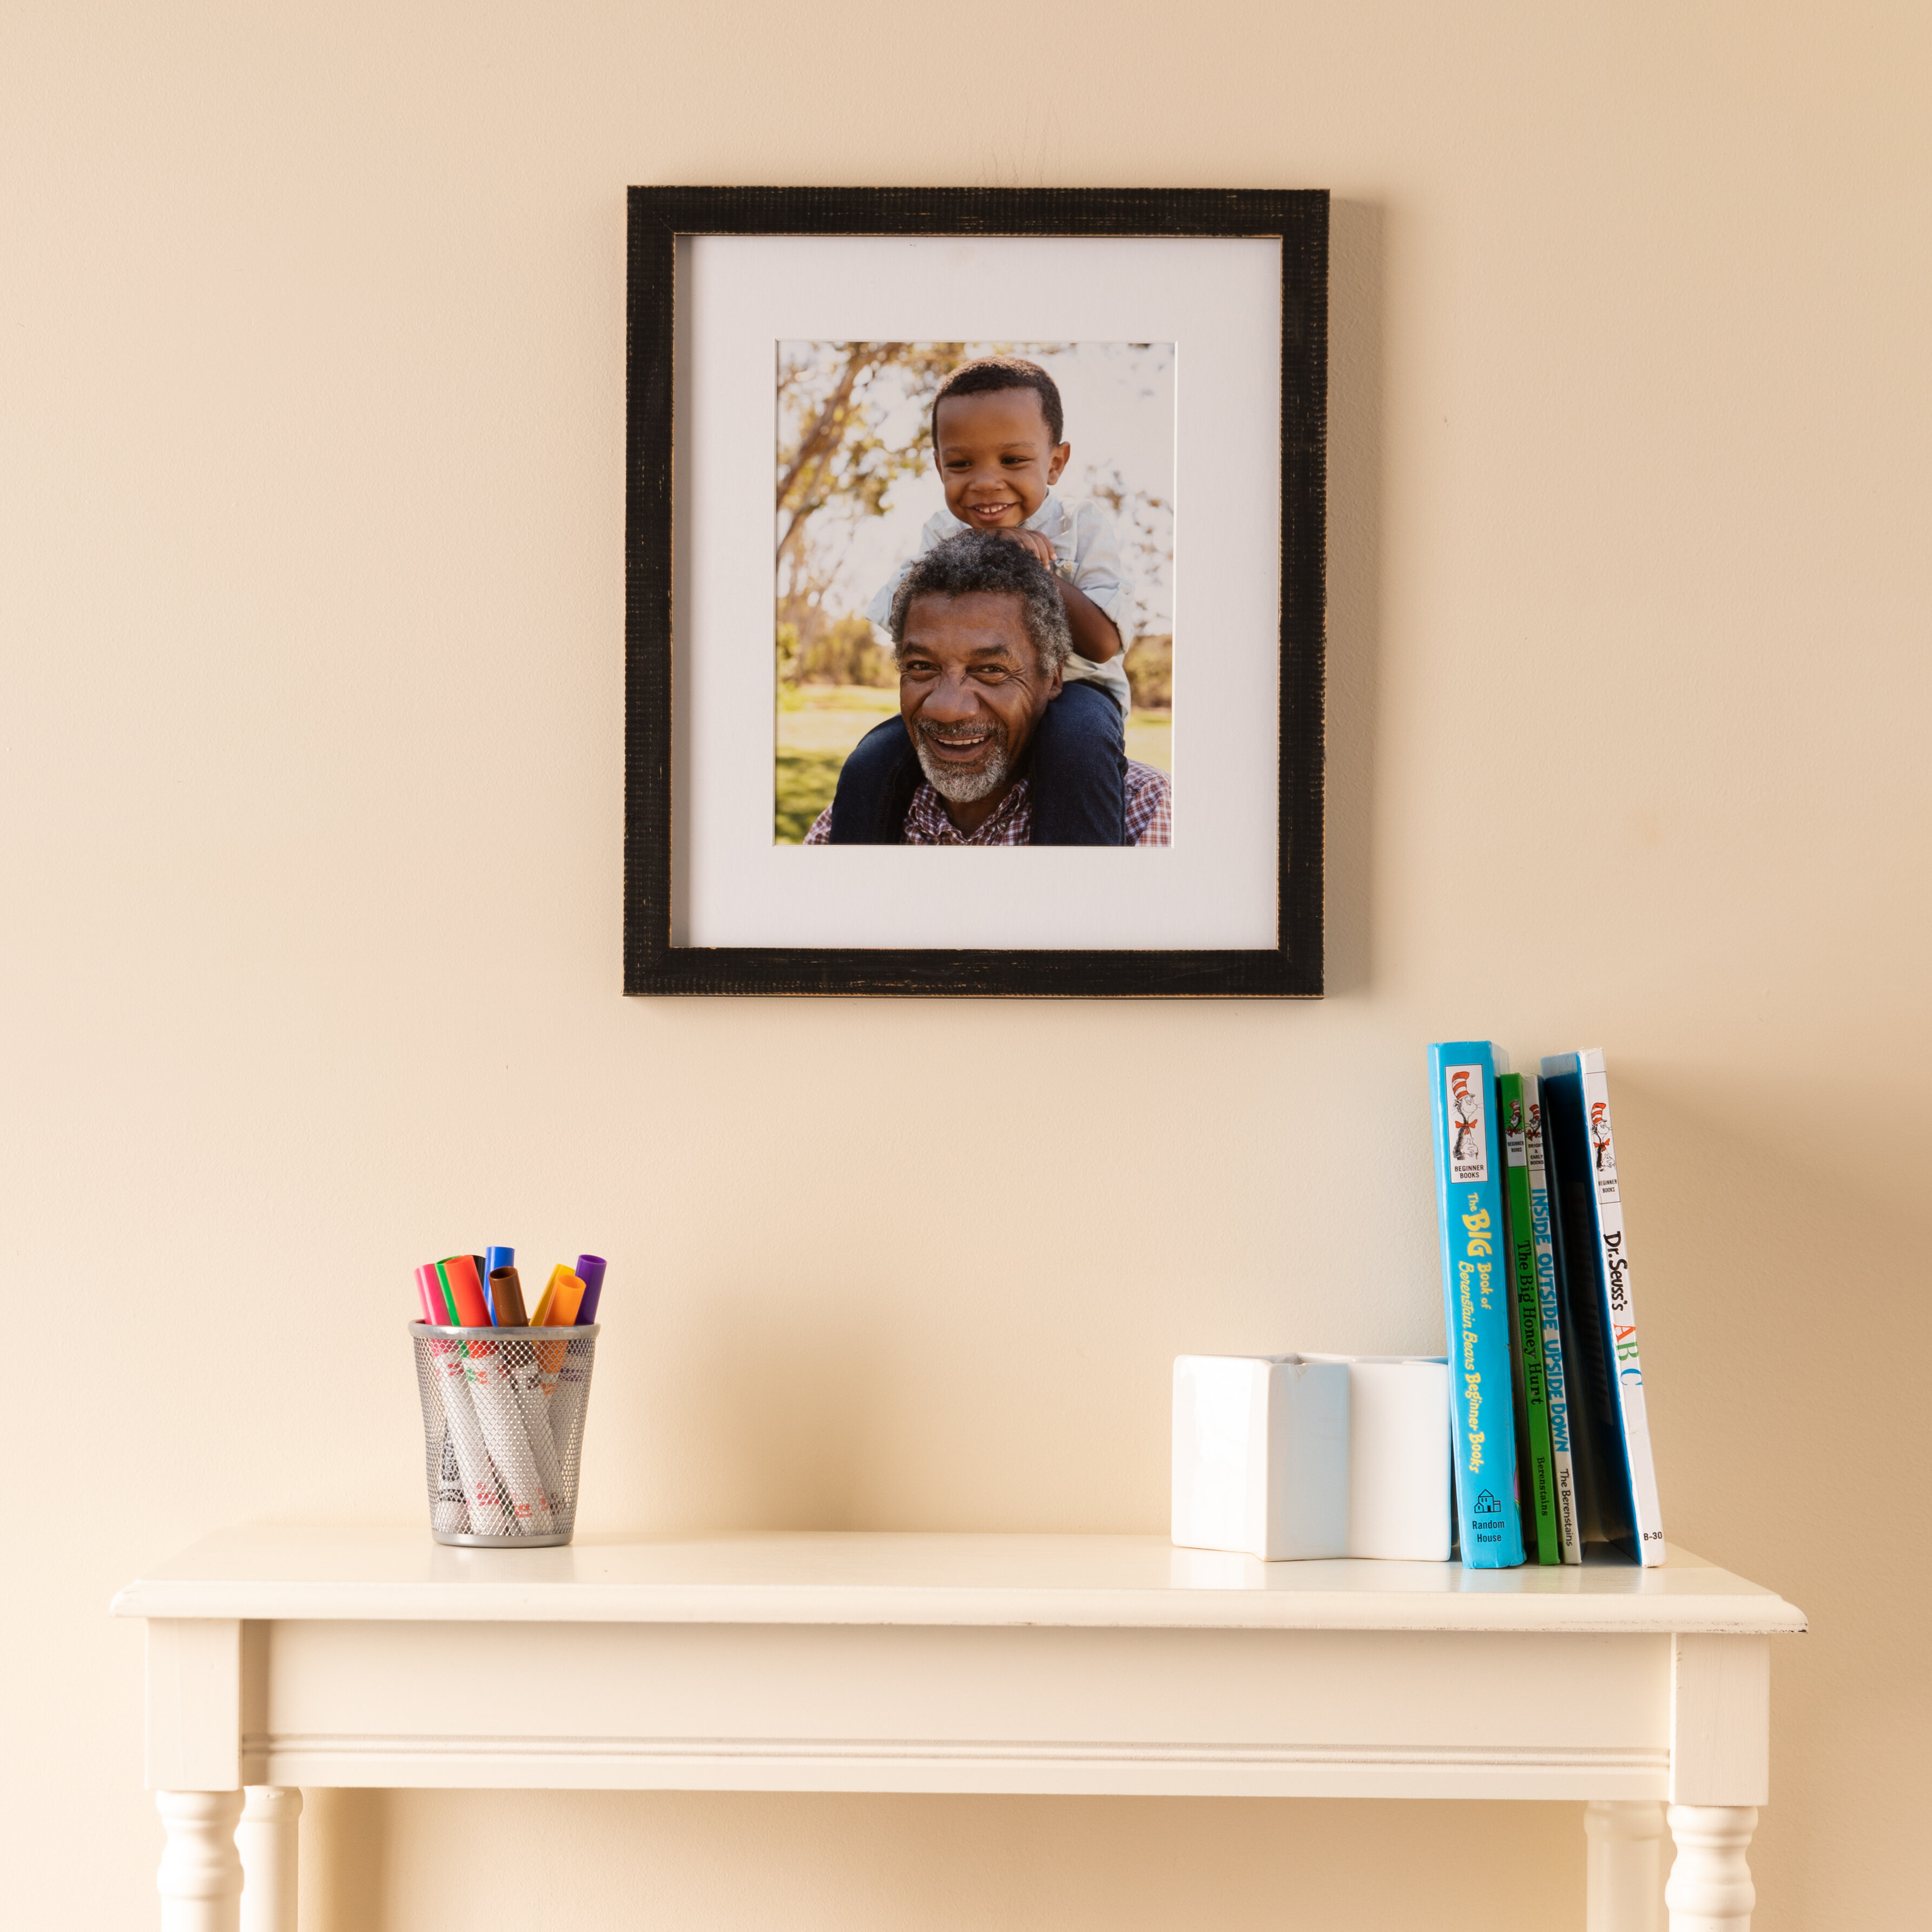 13 X 20 All Picture Frames You Ll Love In 2021 Wayfair